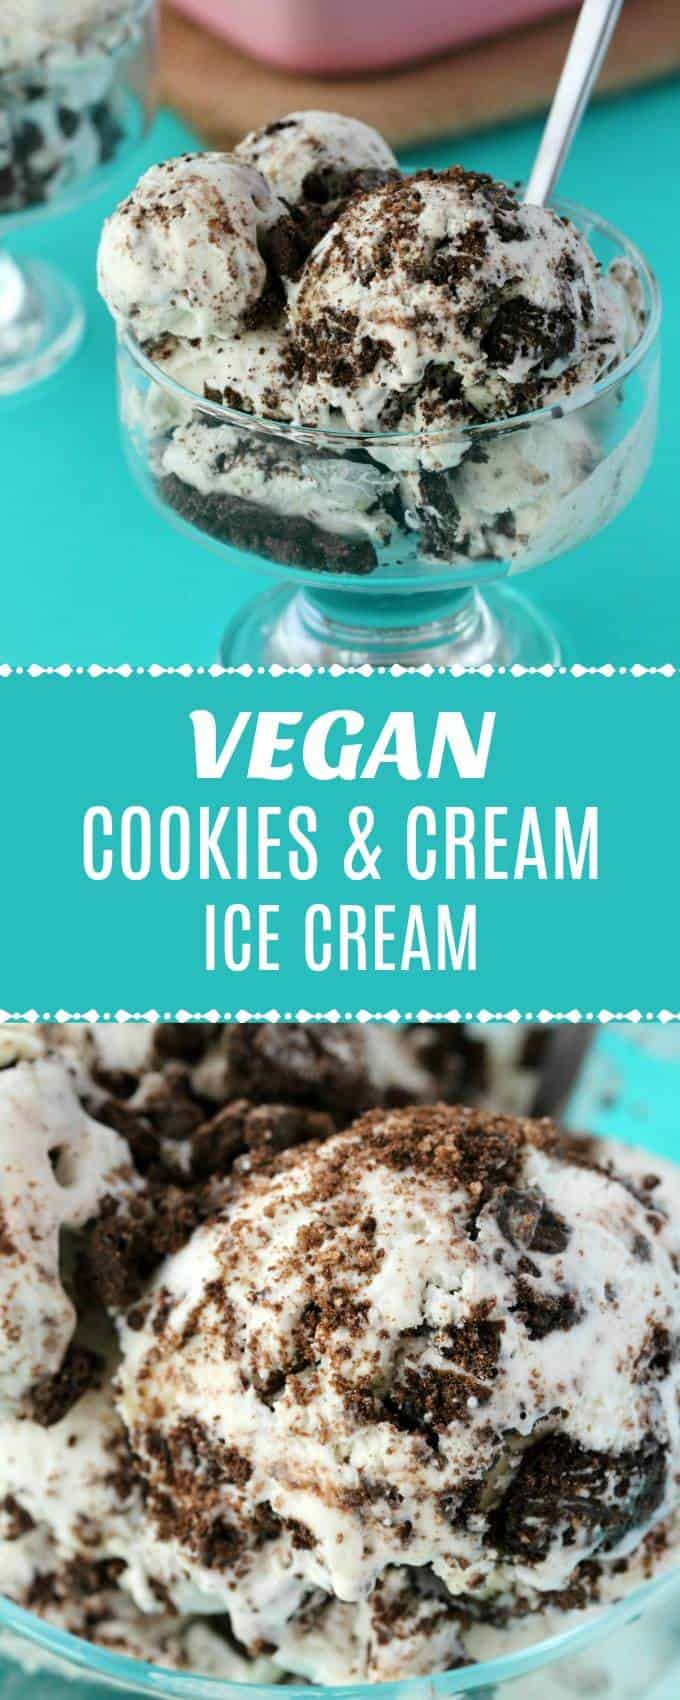 Smooth and creamy vegan cookies and cream ice cream. This no-churn vegan ice cream is only 3-ingredients and super easy to make, with fabulous results. | lovingitvegan.com